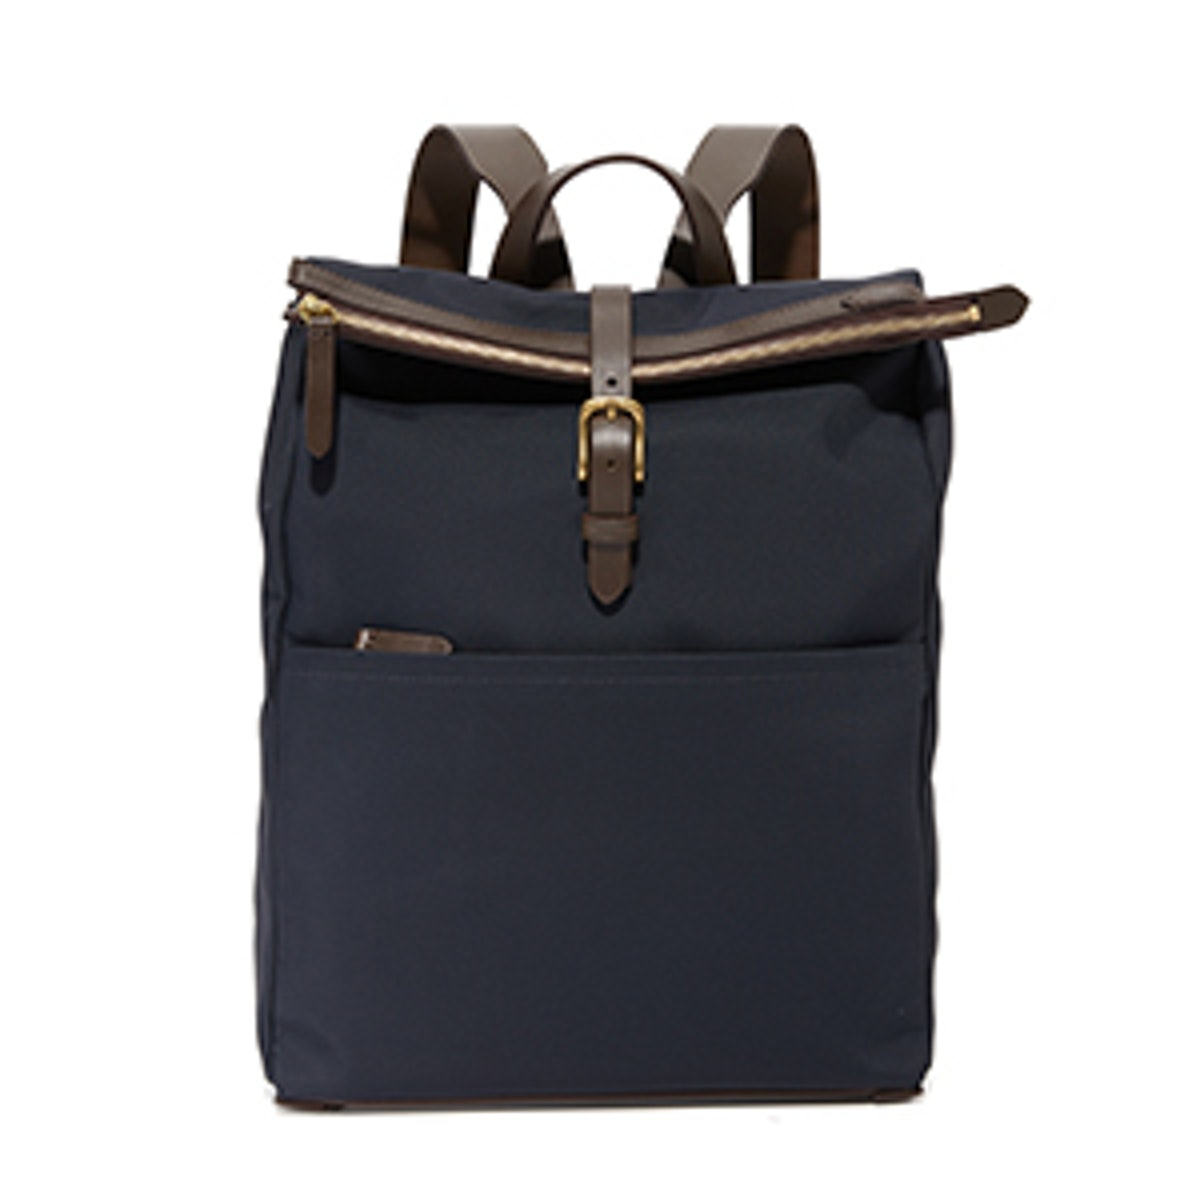 M/S Express Backpack